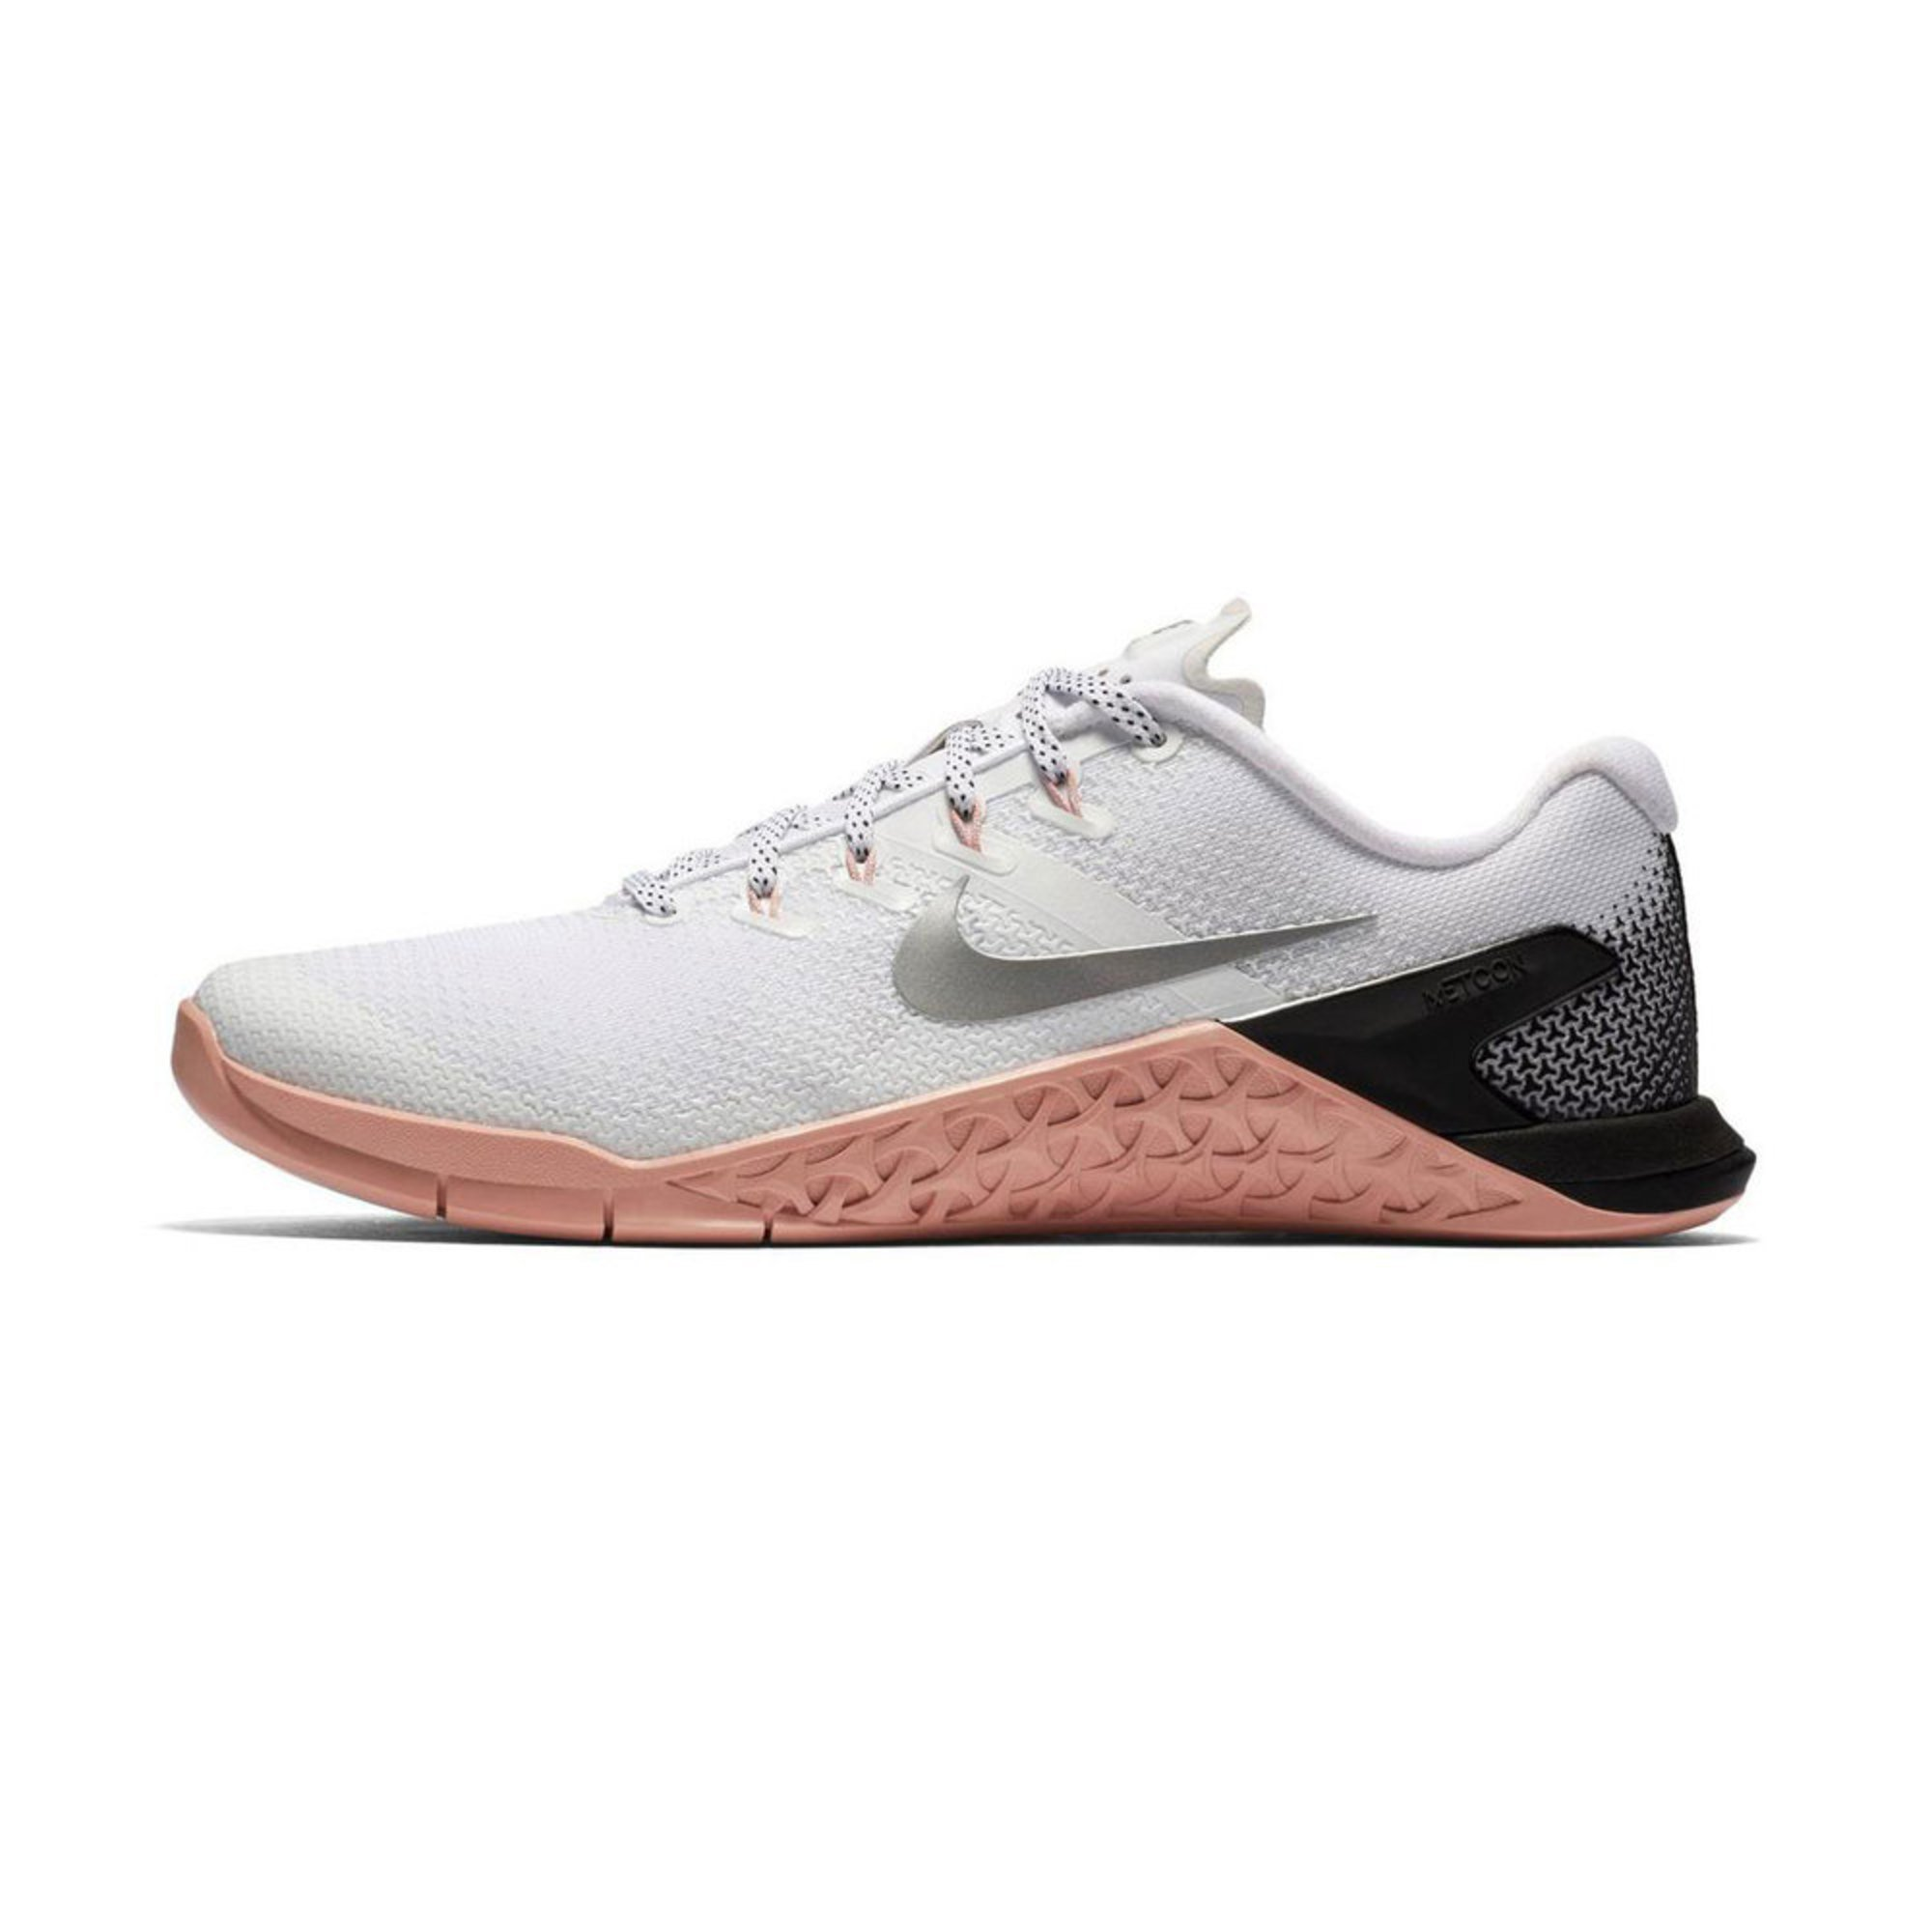 Nike Women S Fitness Shoes